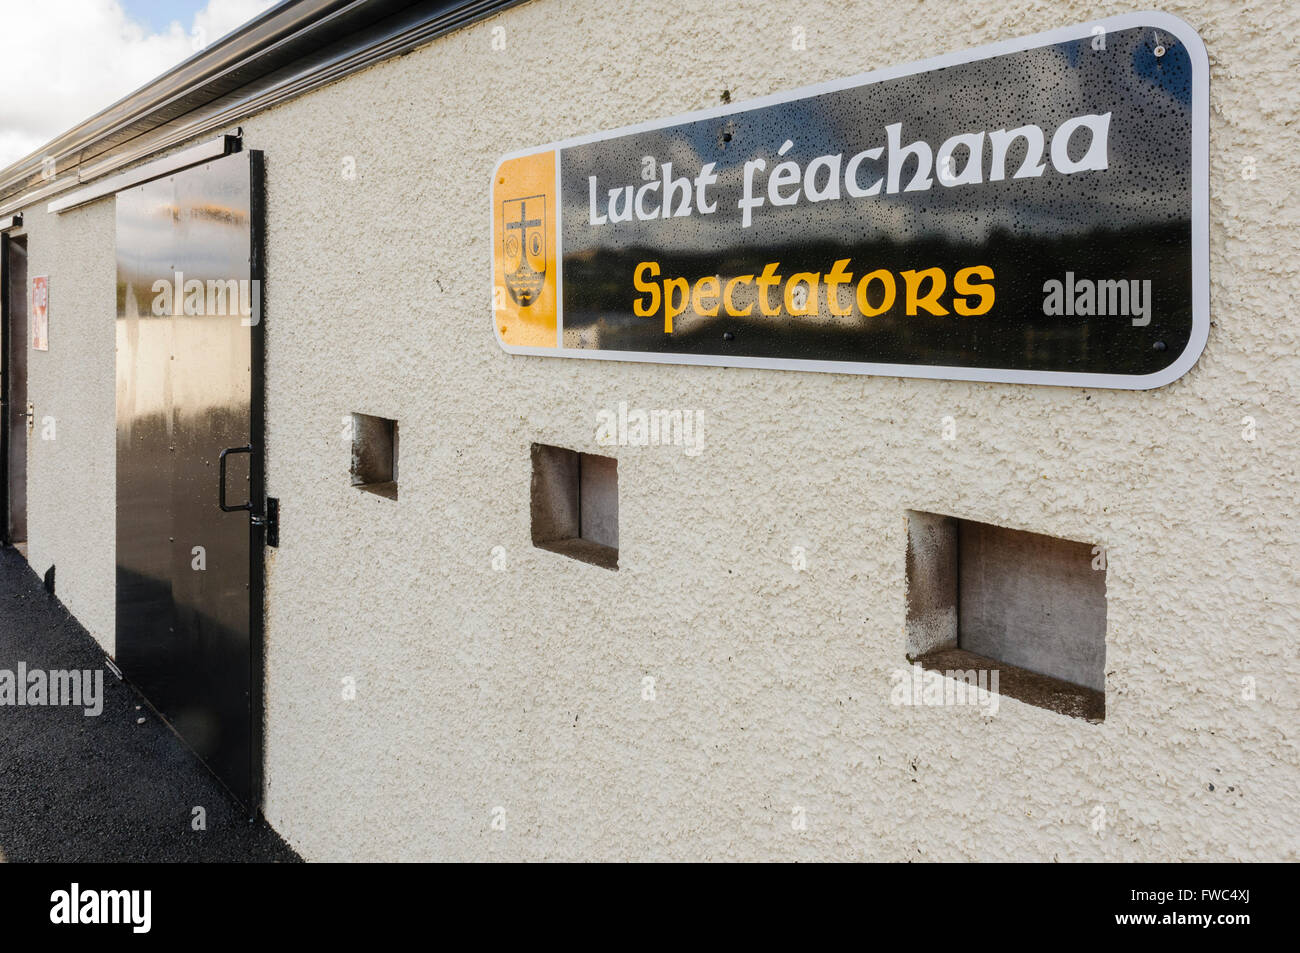 Spectators entrance at a GAA grounds in Ireland. Stock Photo